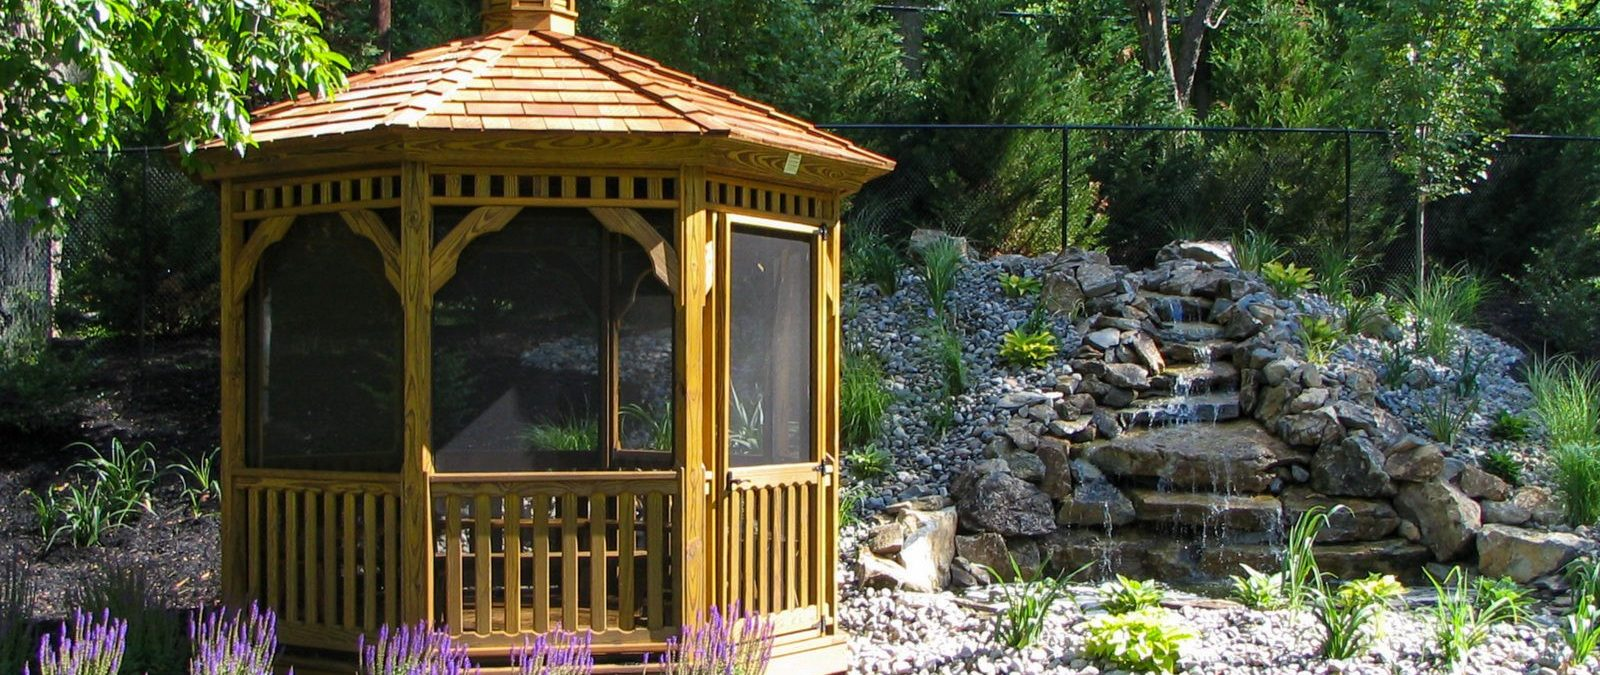 A Permanent Irresistible Wooden Gazebo At The Backyard